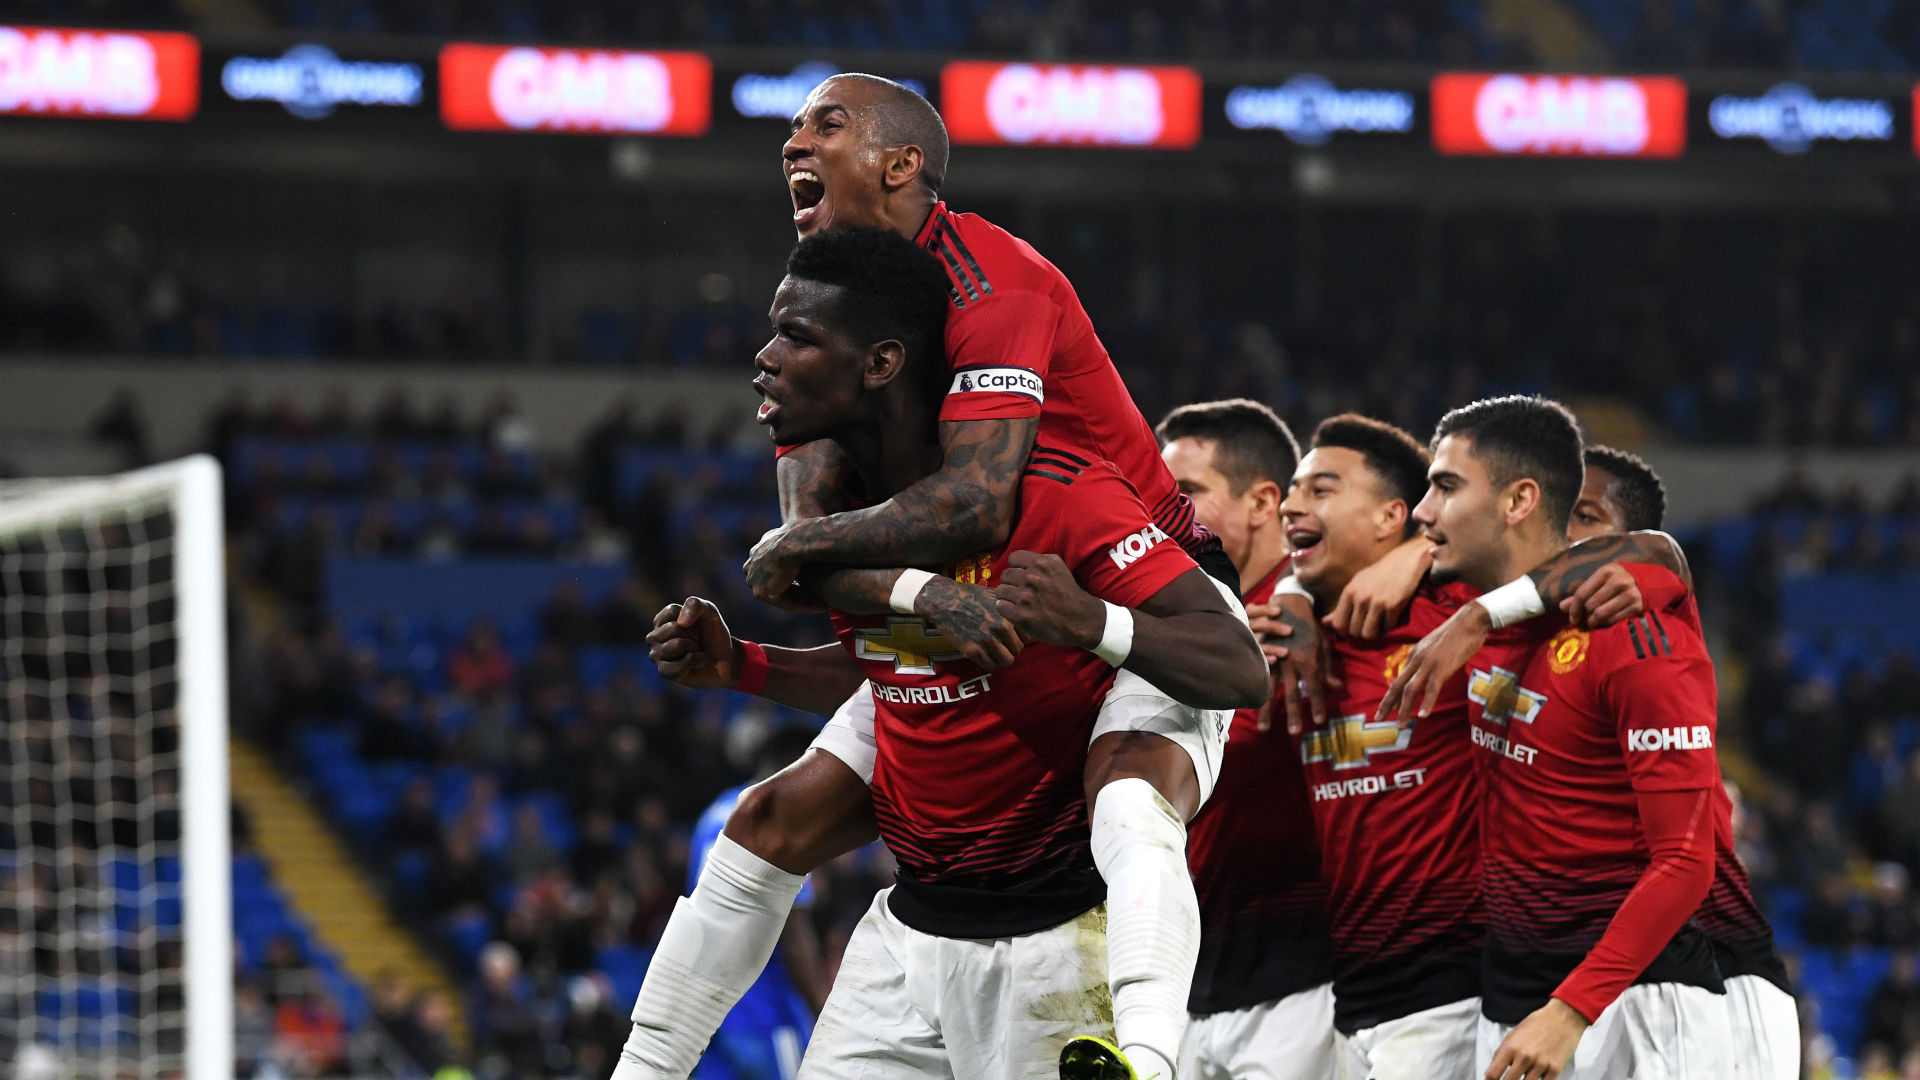 Manchester United will look to entertain at Wembley as they face their toughest test since Ole Gunnar Solskjaer's appointment against Spurs.